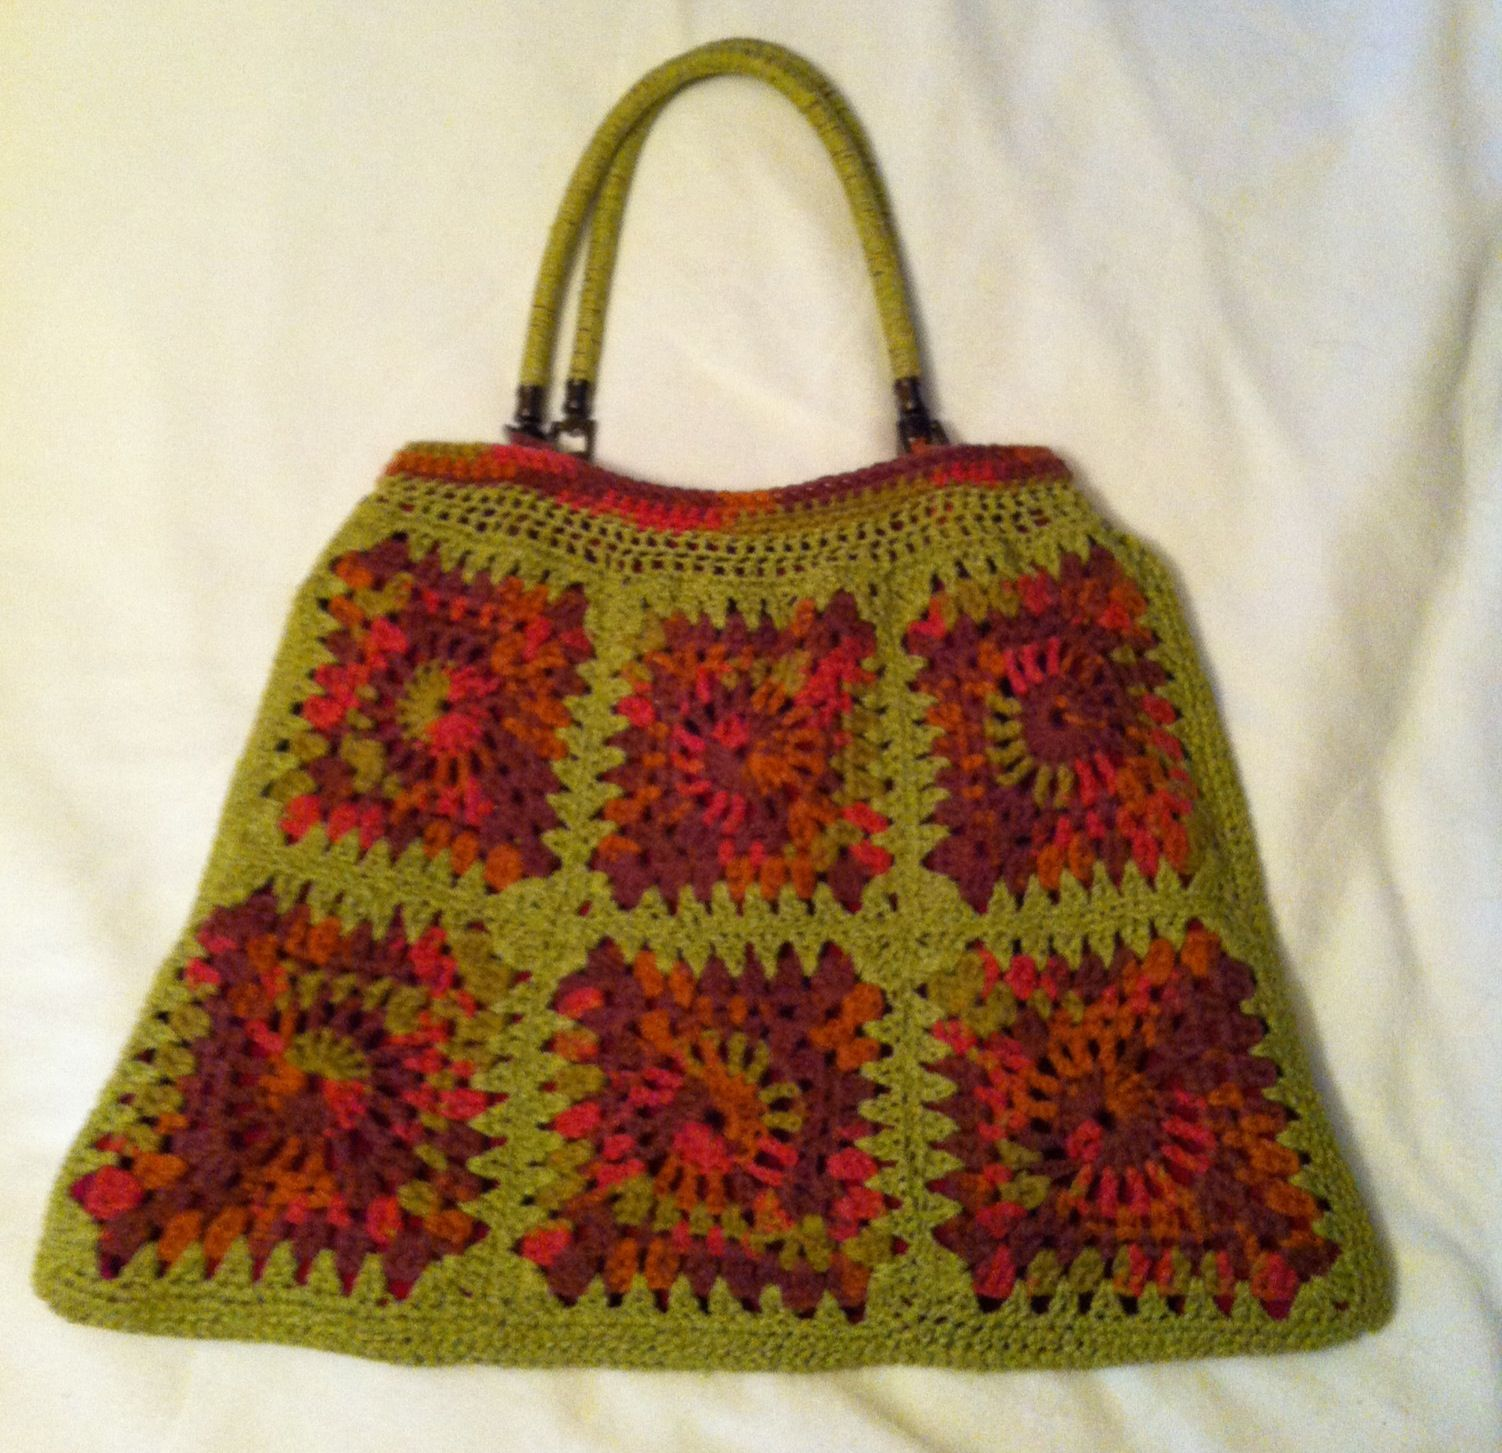 Crochet Granny Square Purse : Crochet granny square bag Inspired Needlework Pinterest